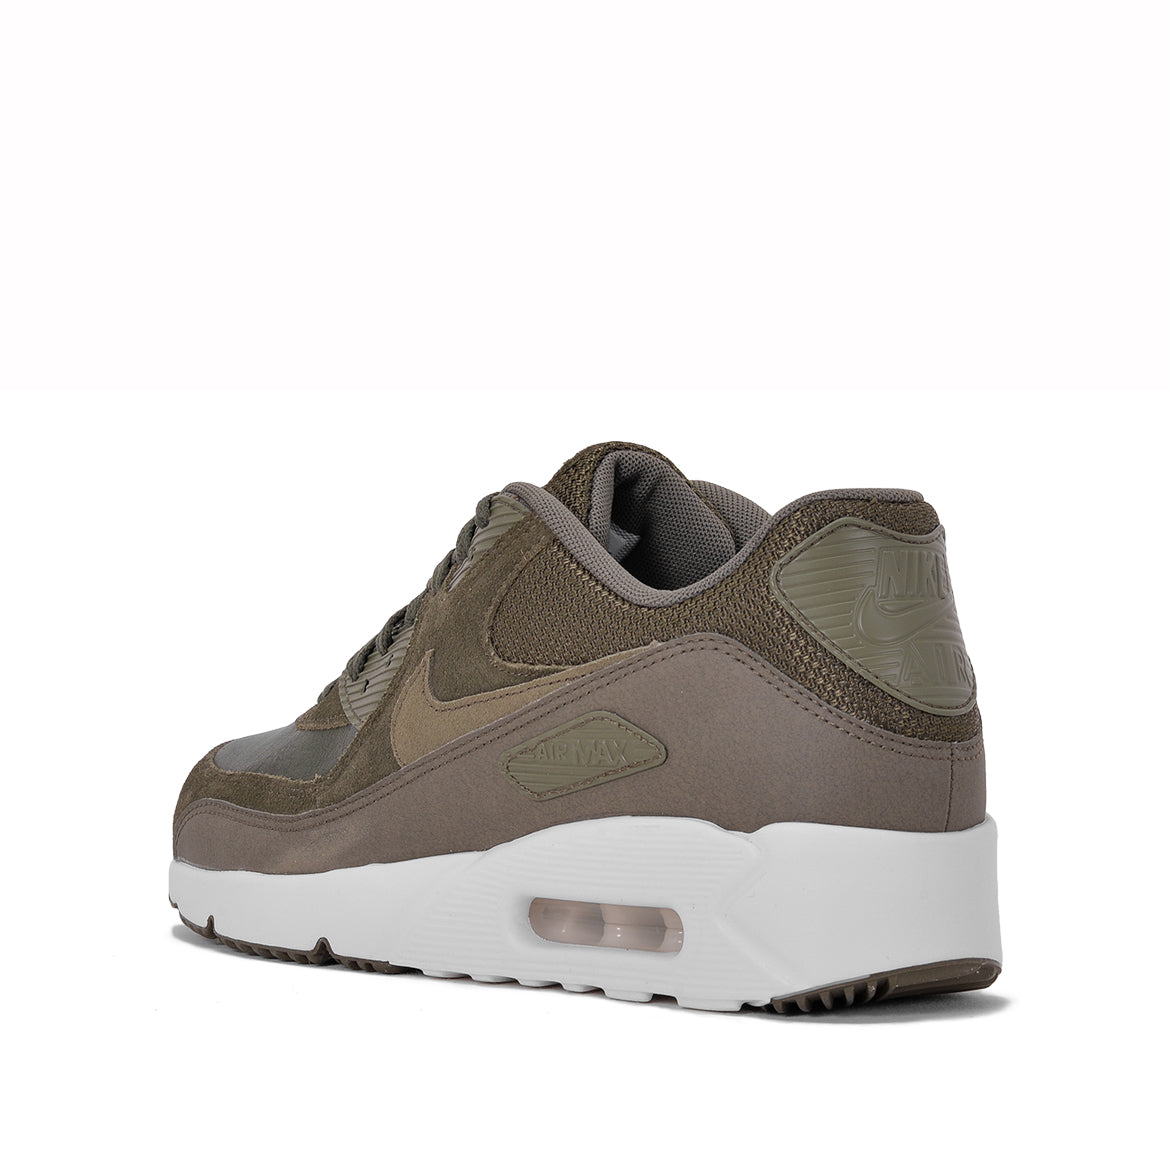 AIR MAX 90 ULTRA 2.0 LTR - CARGO KHAKI / MEDIUM OLIVE